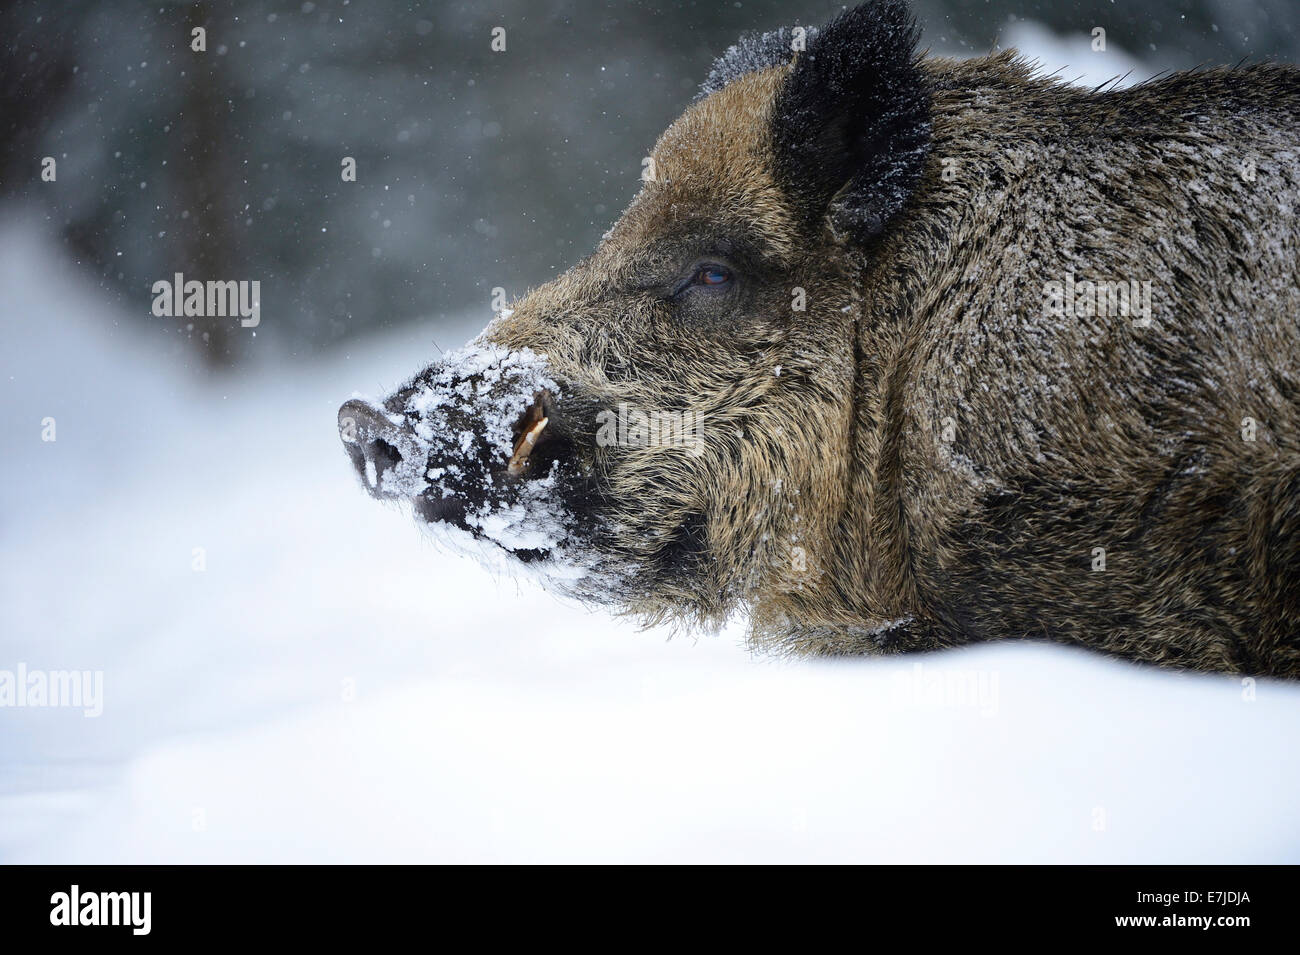 Wild boar, animal, Sus scrofa scrofa, sow, wild boars, black game, cloven-hoofed animal, pigs, pig, vertebrates, - Stock Image